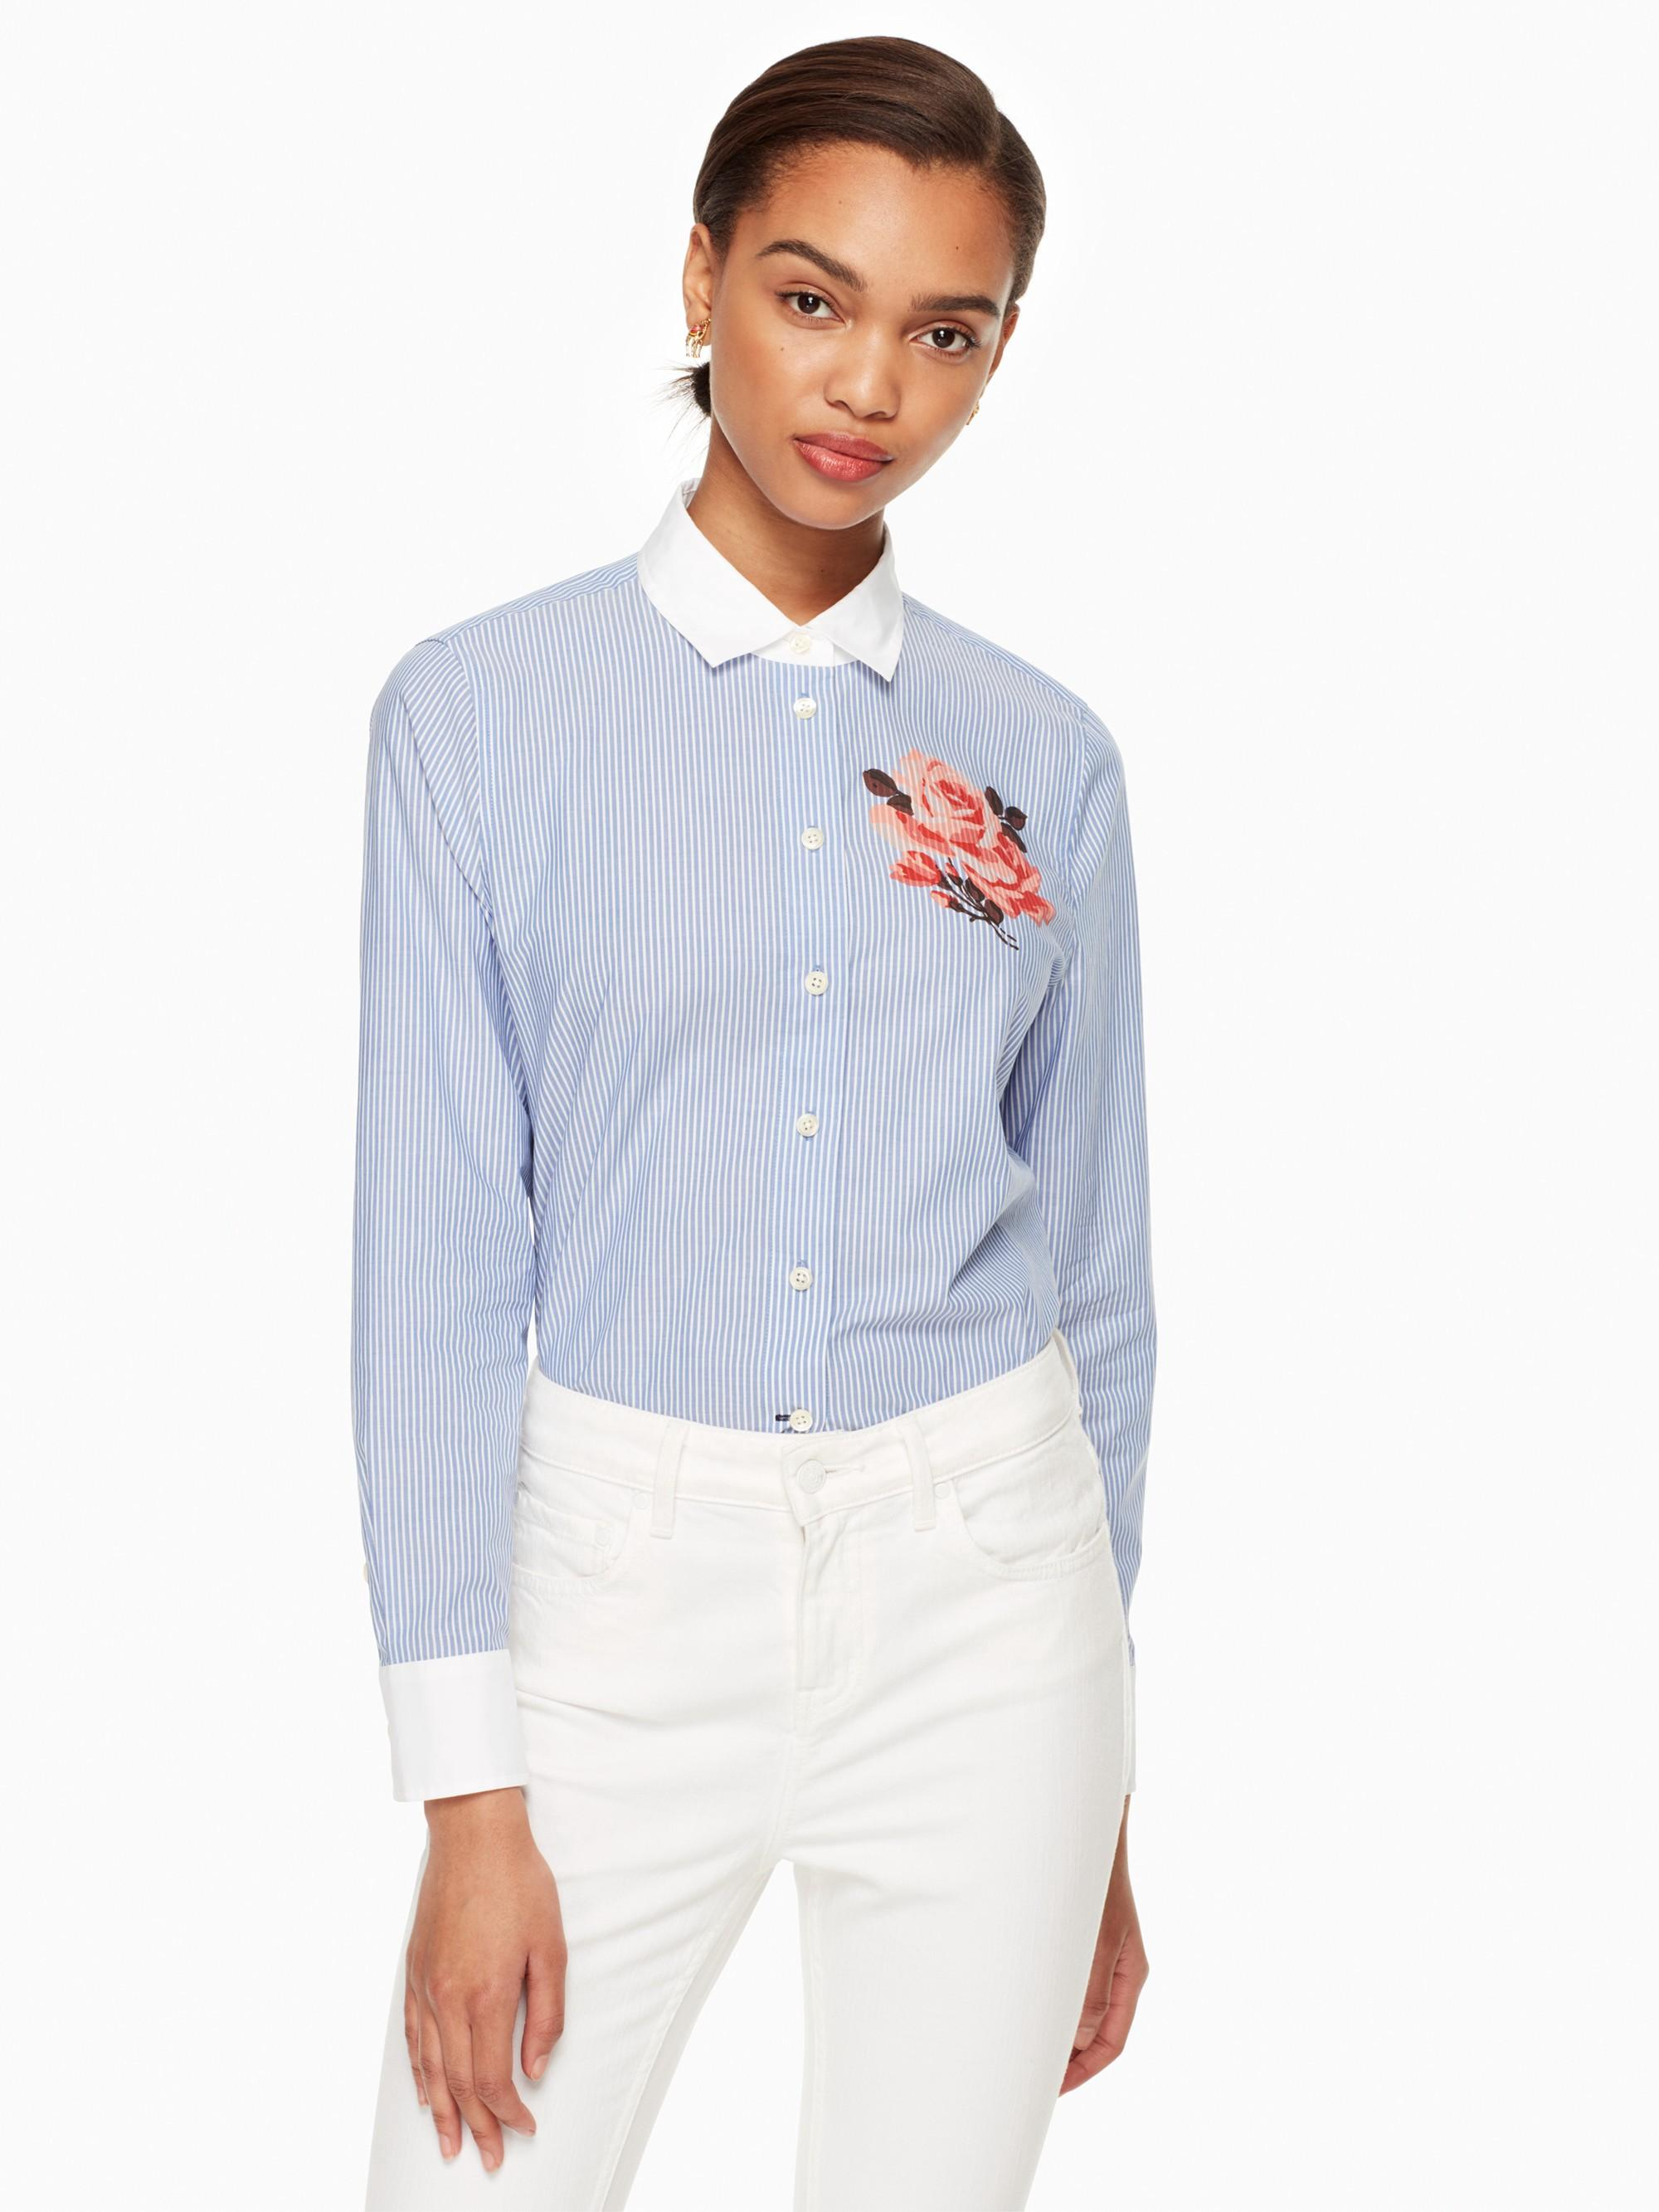 Kate Spade Tromp L'Oeil Rose Shirt In Fresh White/Sound Blue